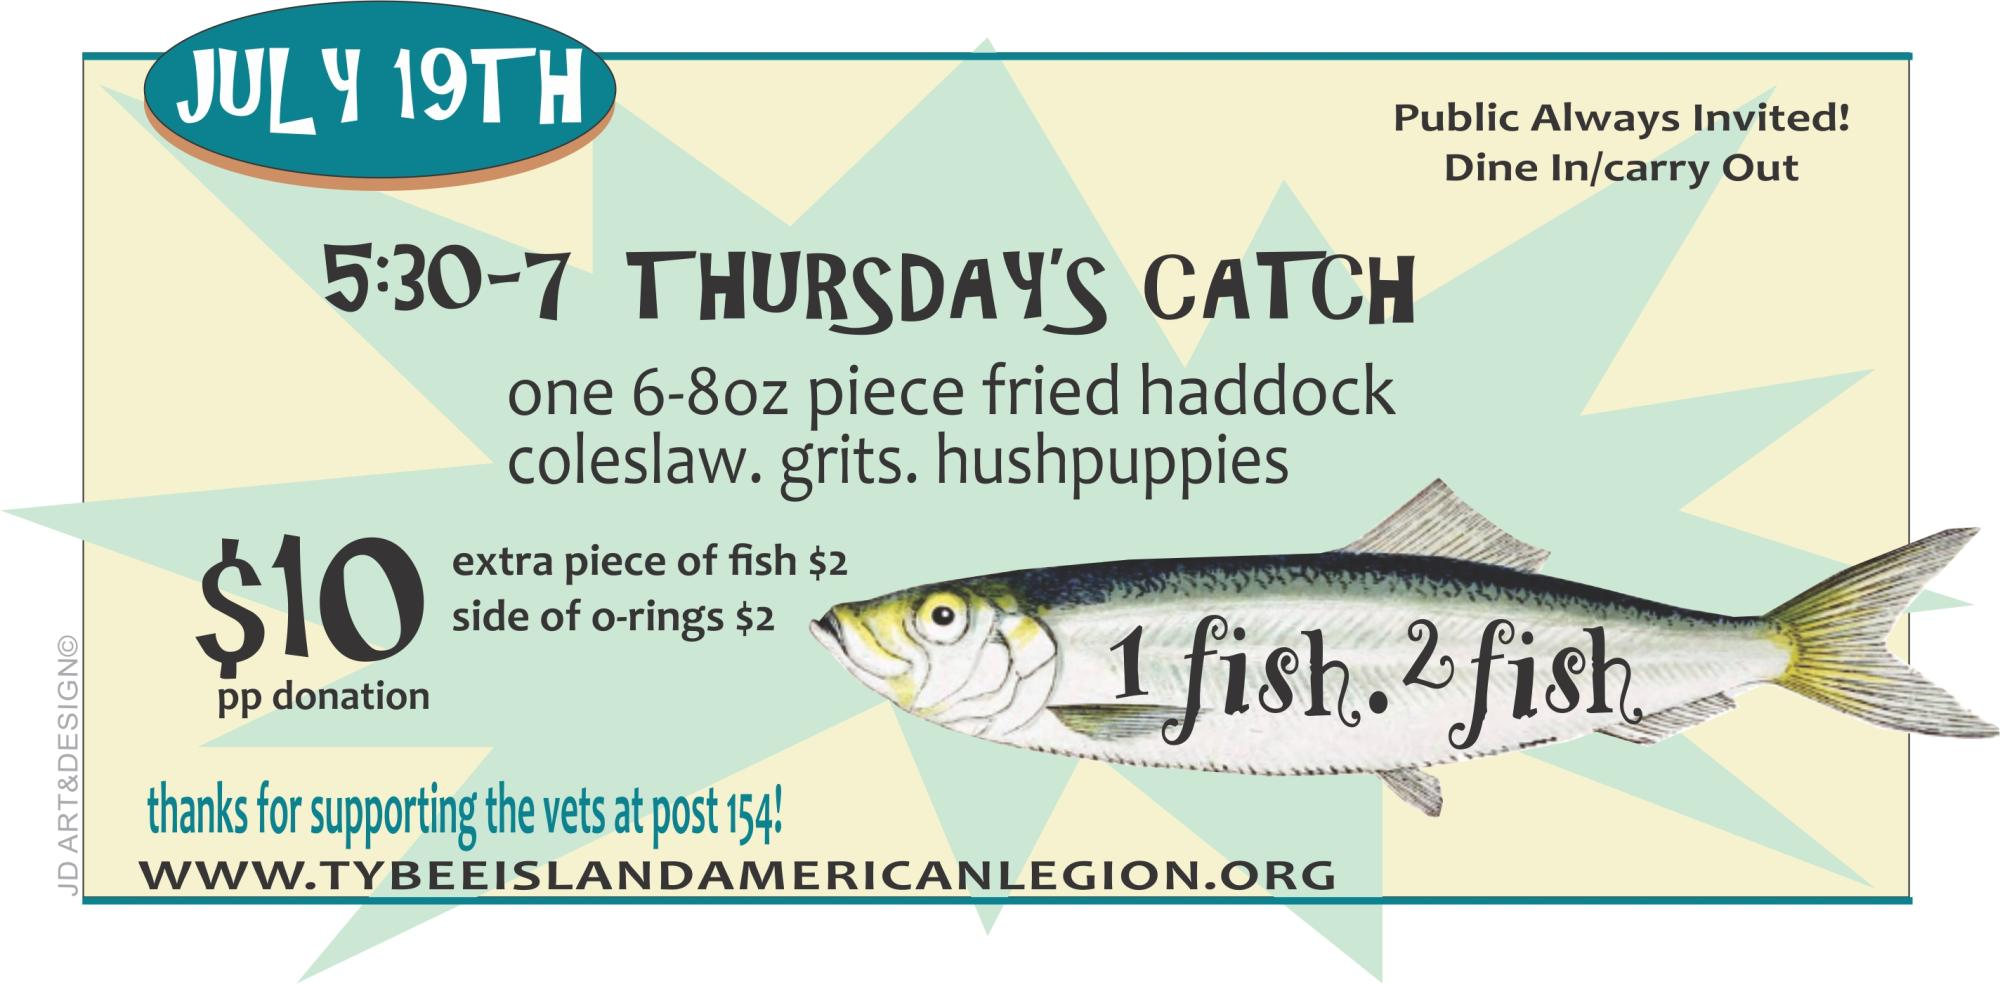 fish_thursday_catch20155.jpg